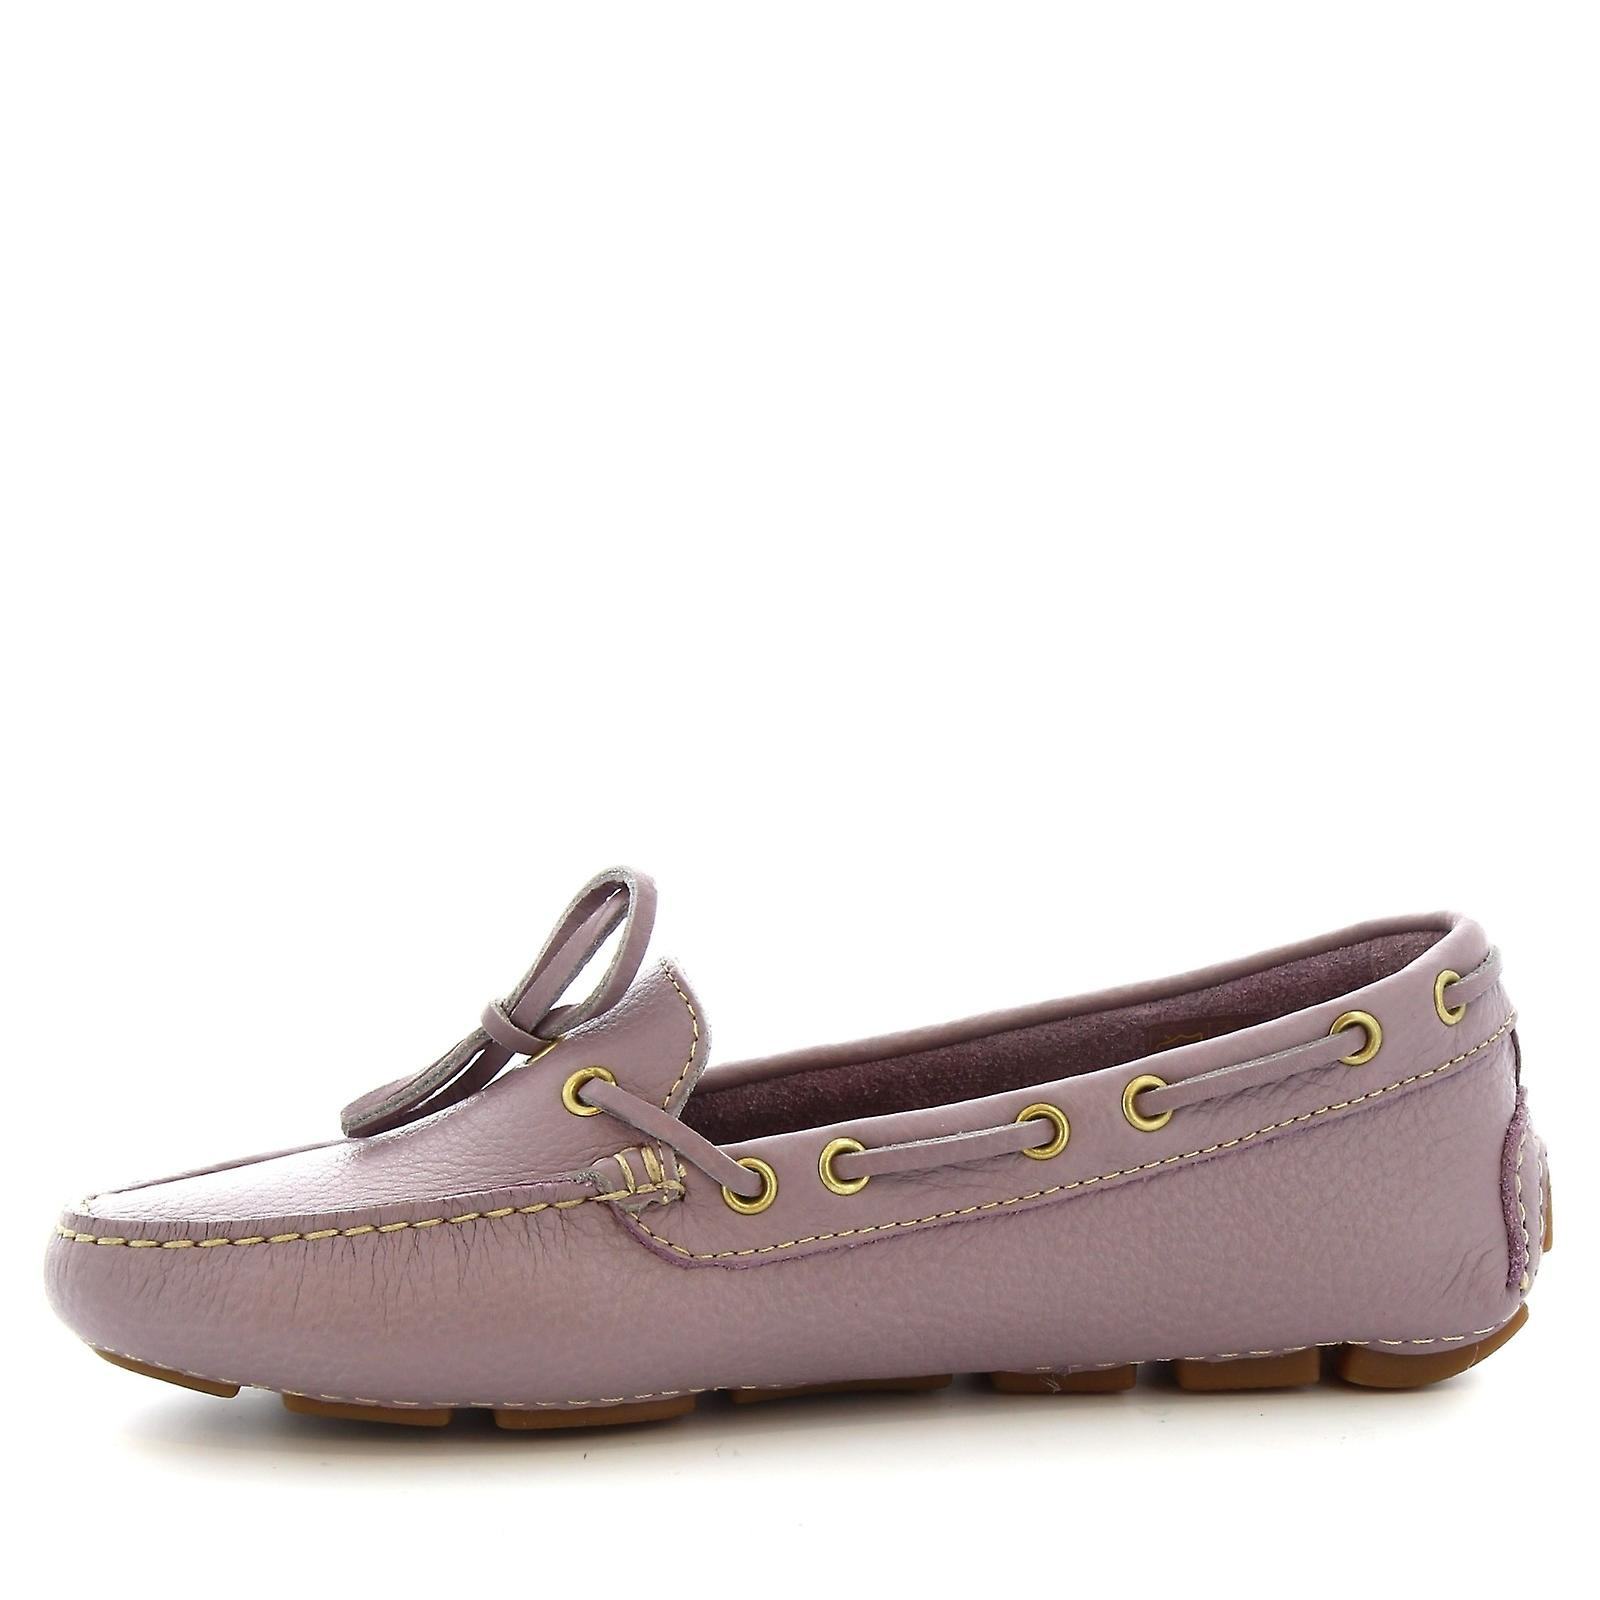 Leonardo Shoes women's handmade boat mocassins in lilac calf leather